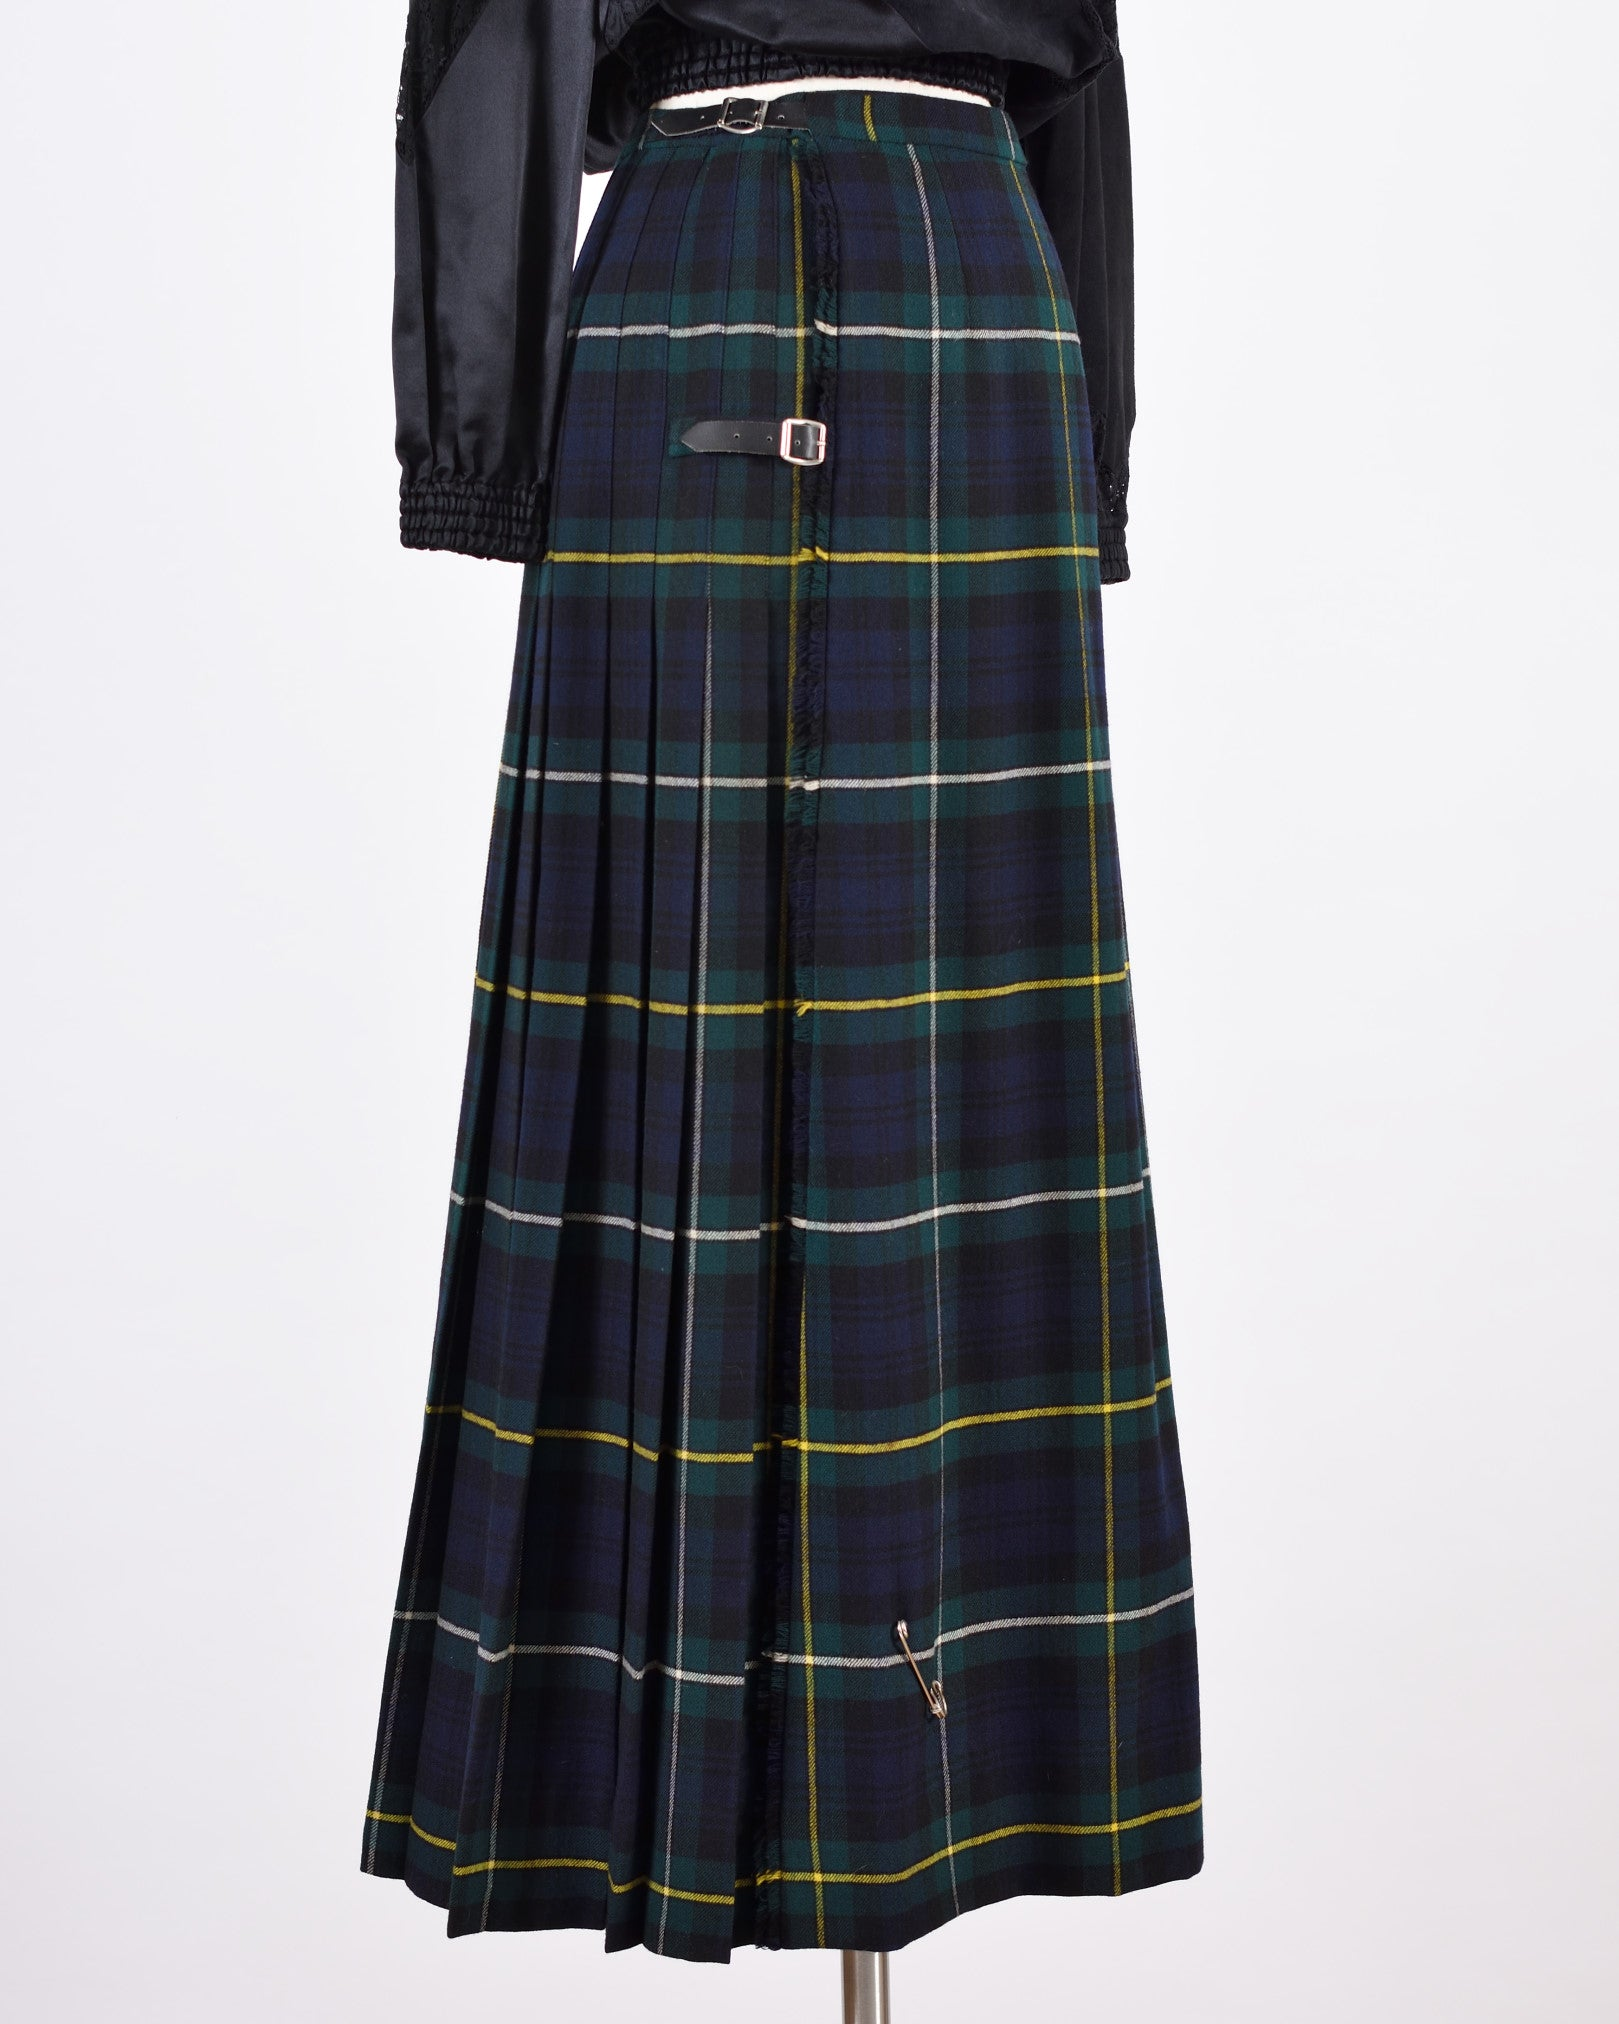 Green Tartan Pleated Skirt